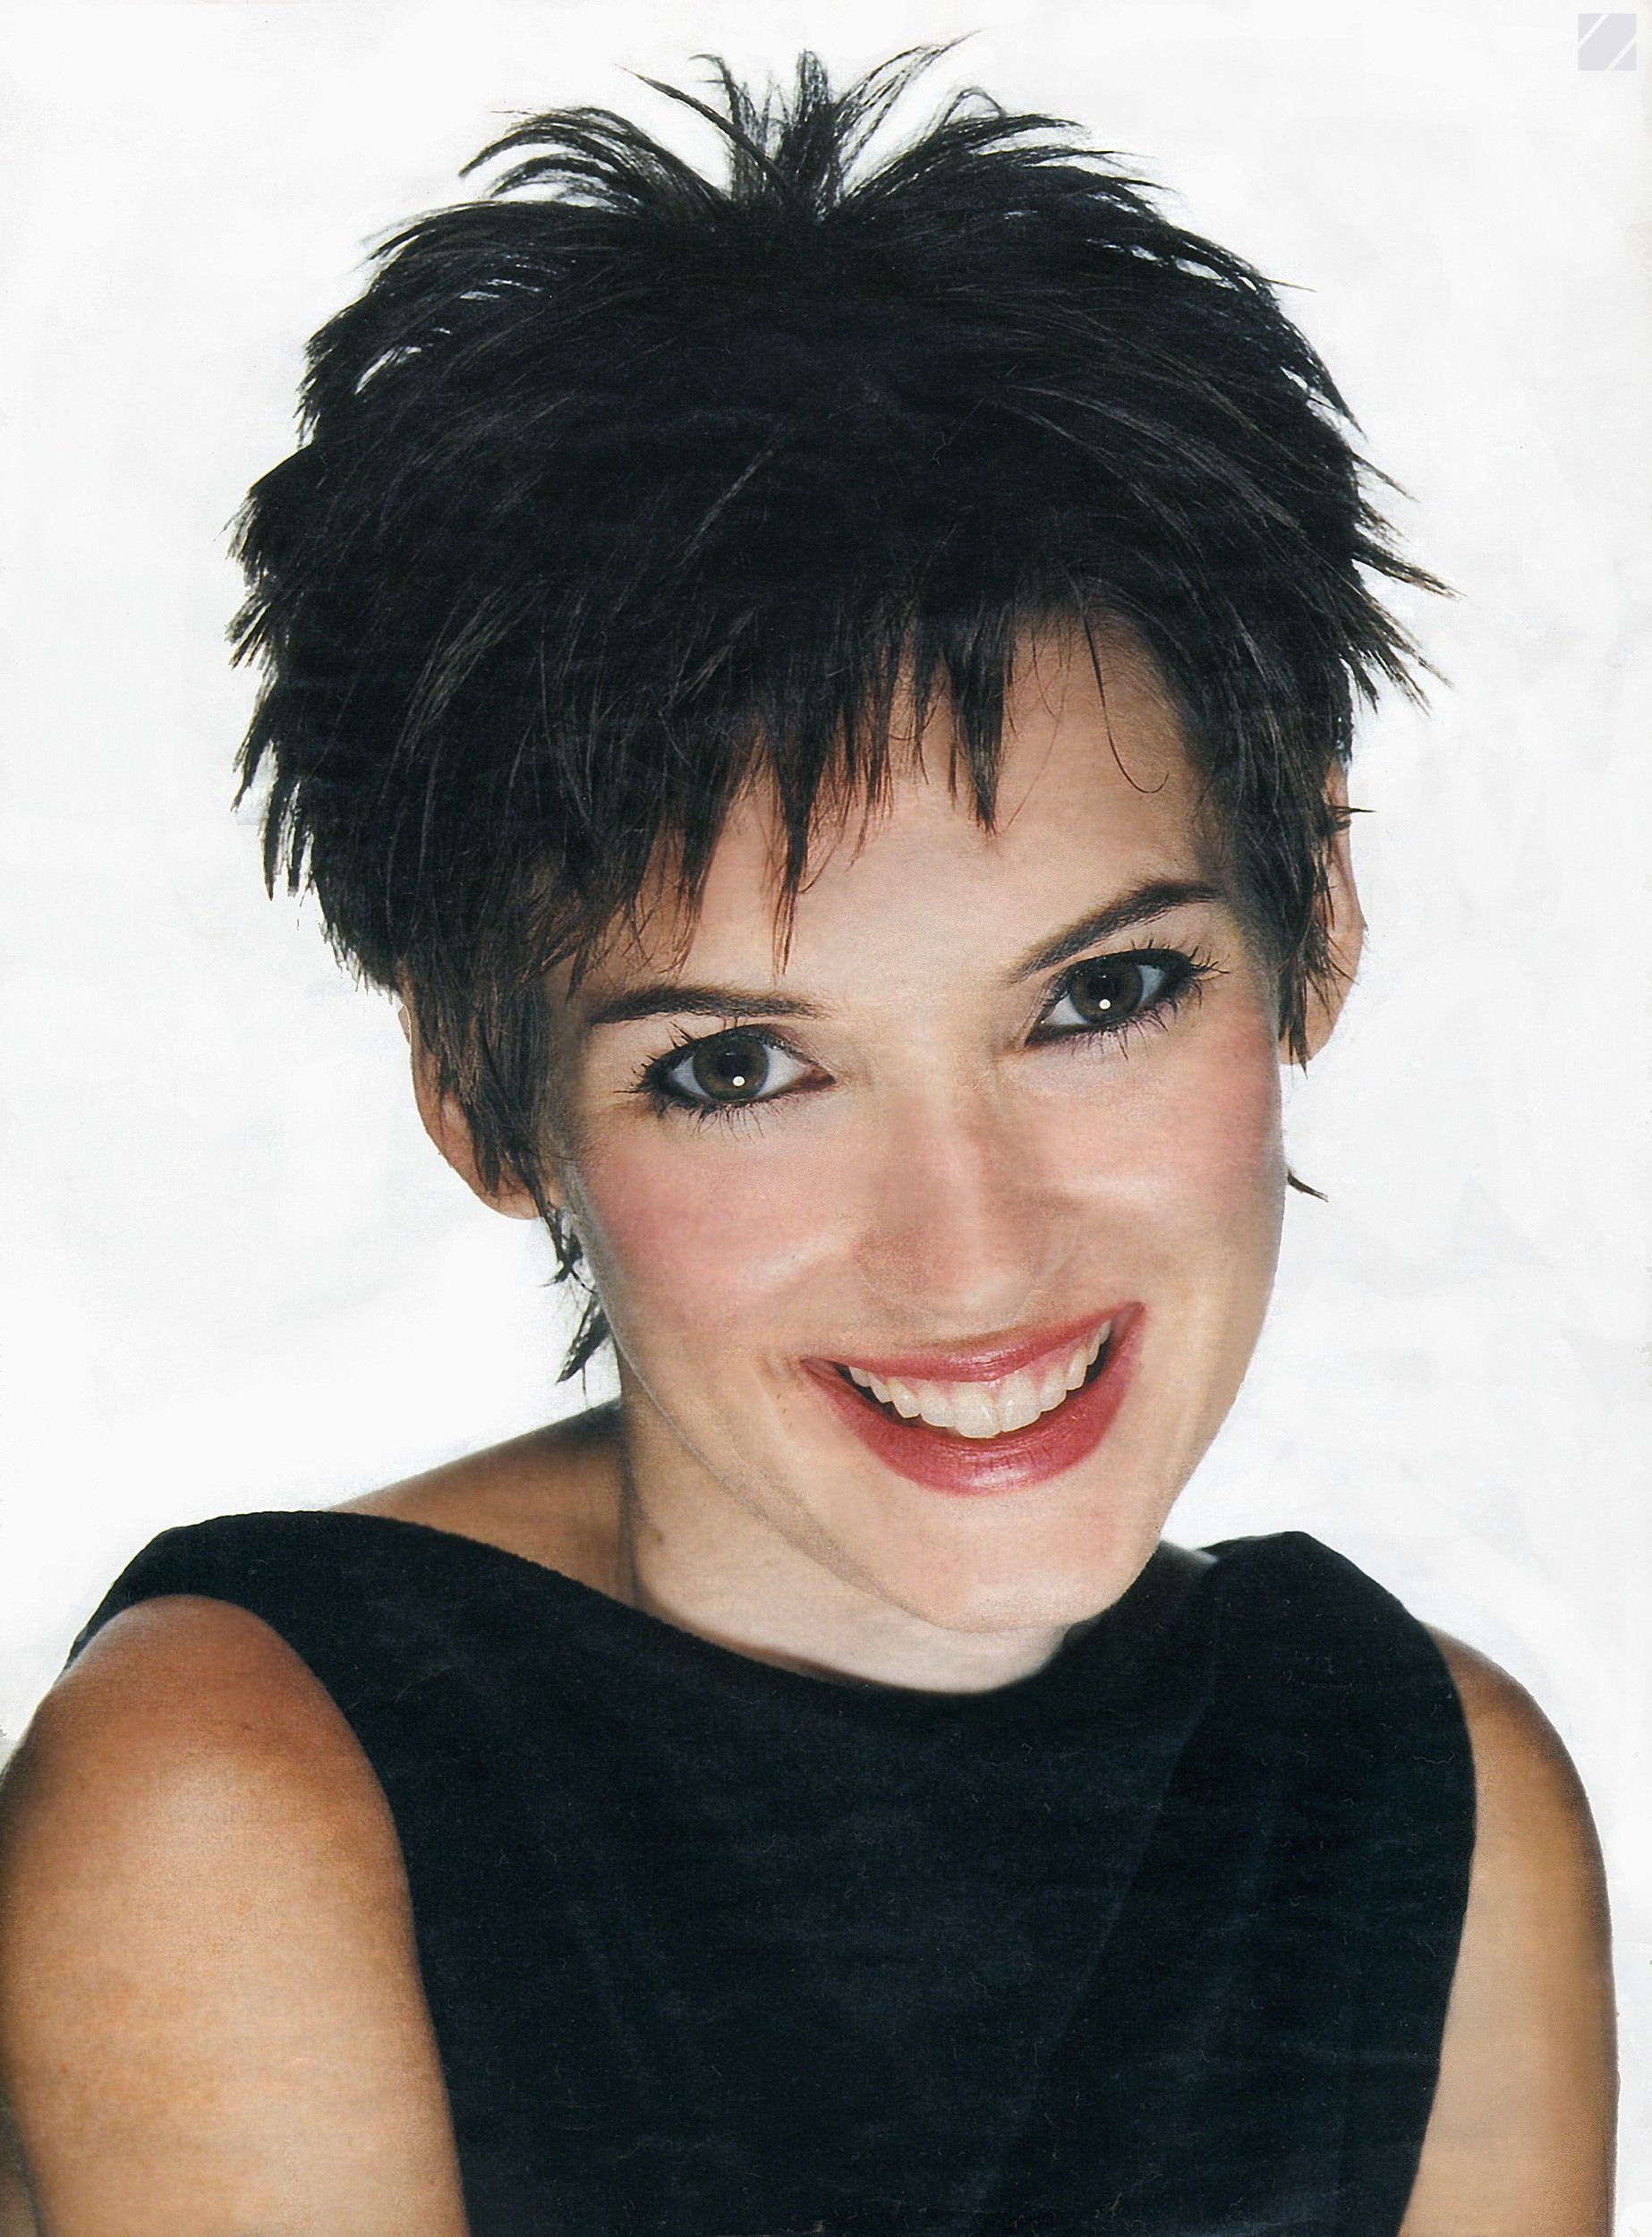 Winona Ryder | Coupe De Cheveux | Pinterest | Winona Ryder, Hair Pertaining To Pixie Bob Hairstyles With Golden Blonde Feathers (View 20 of 20)